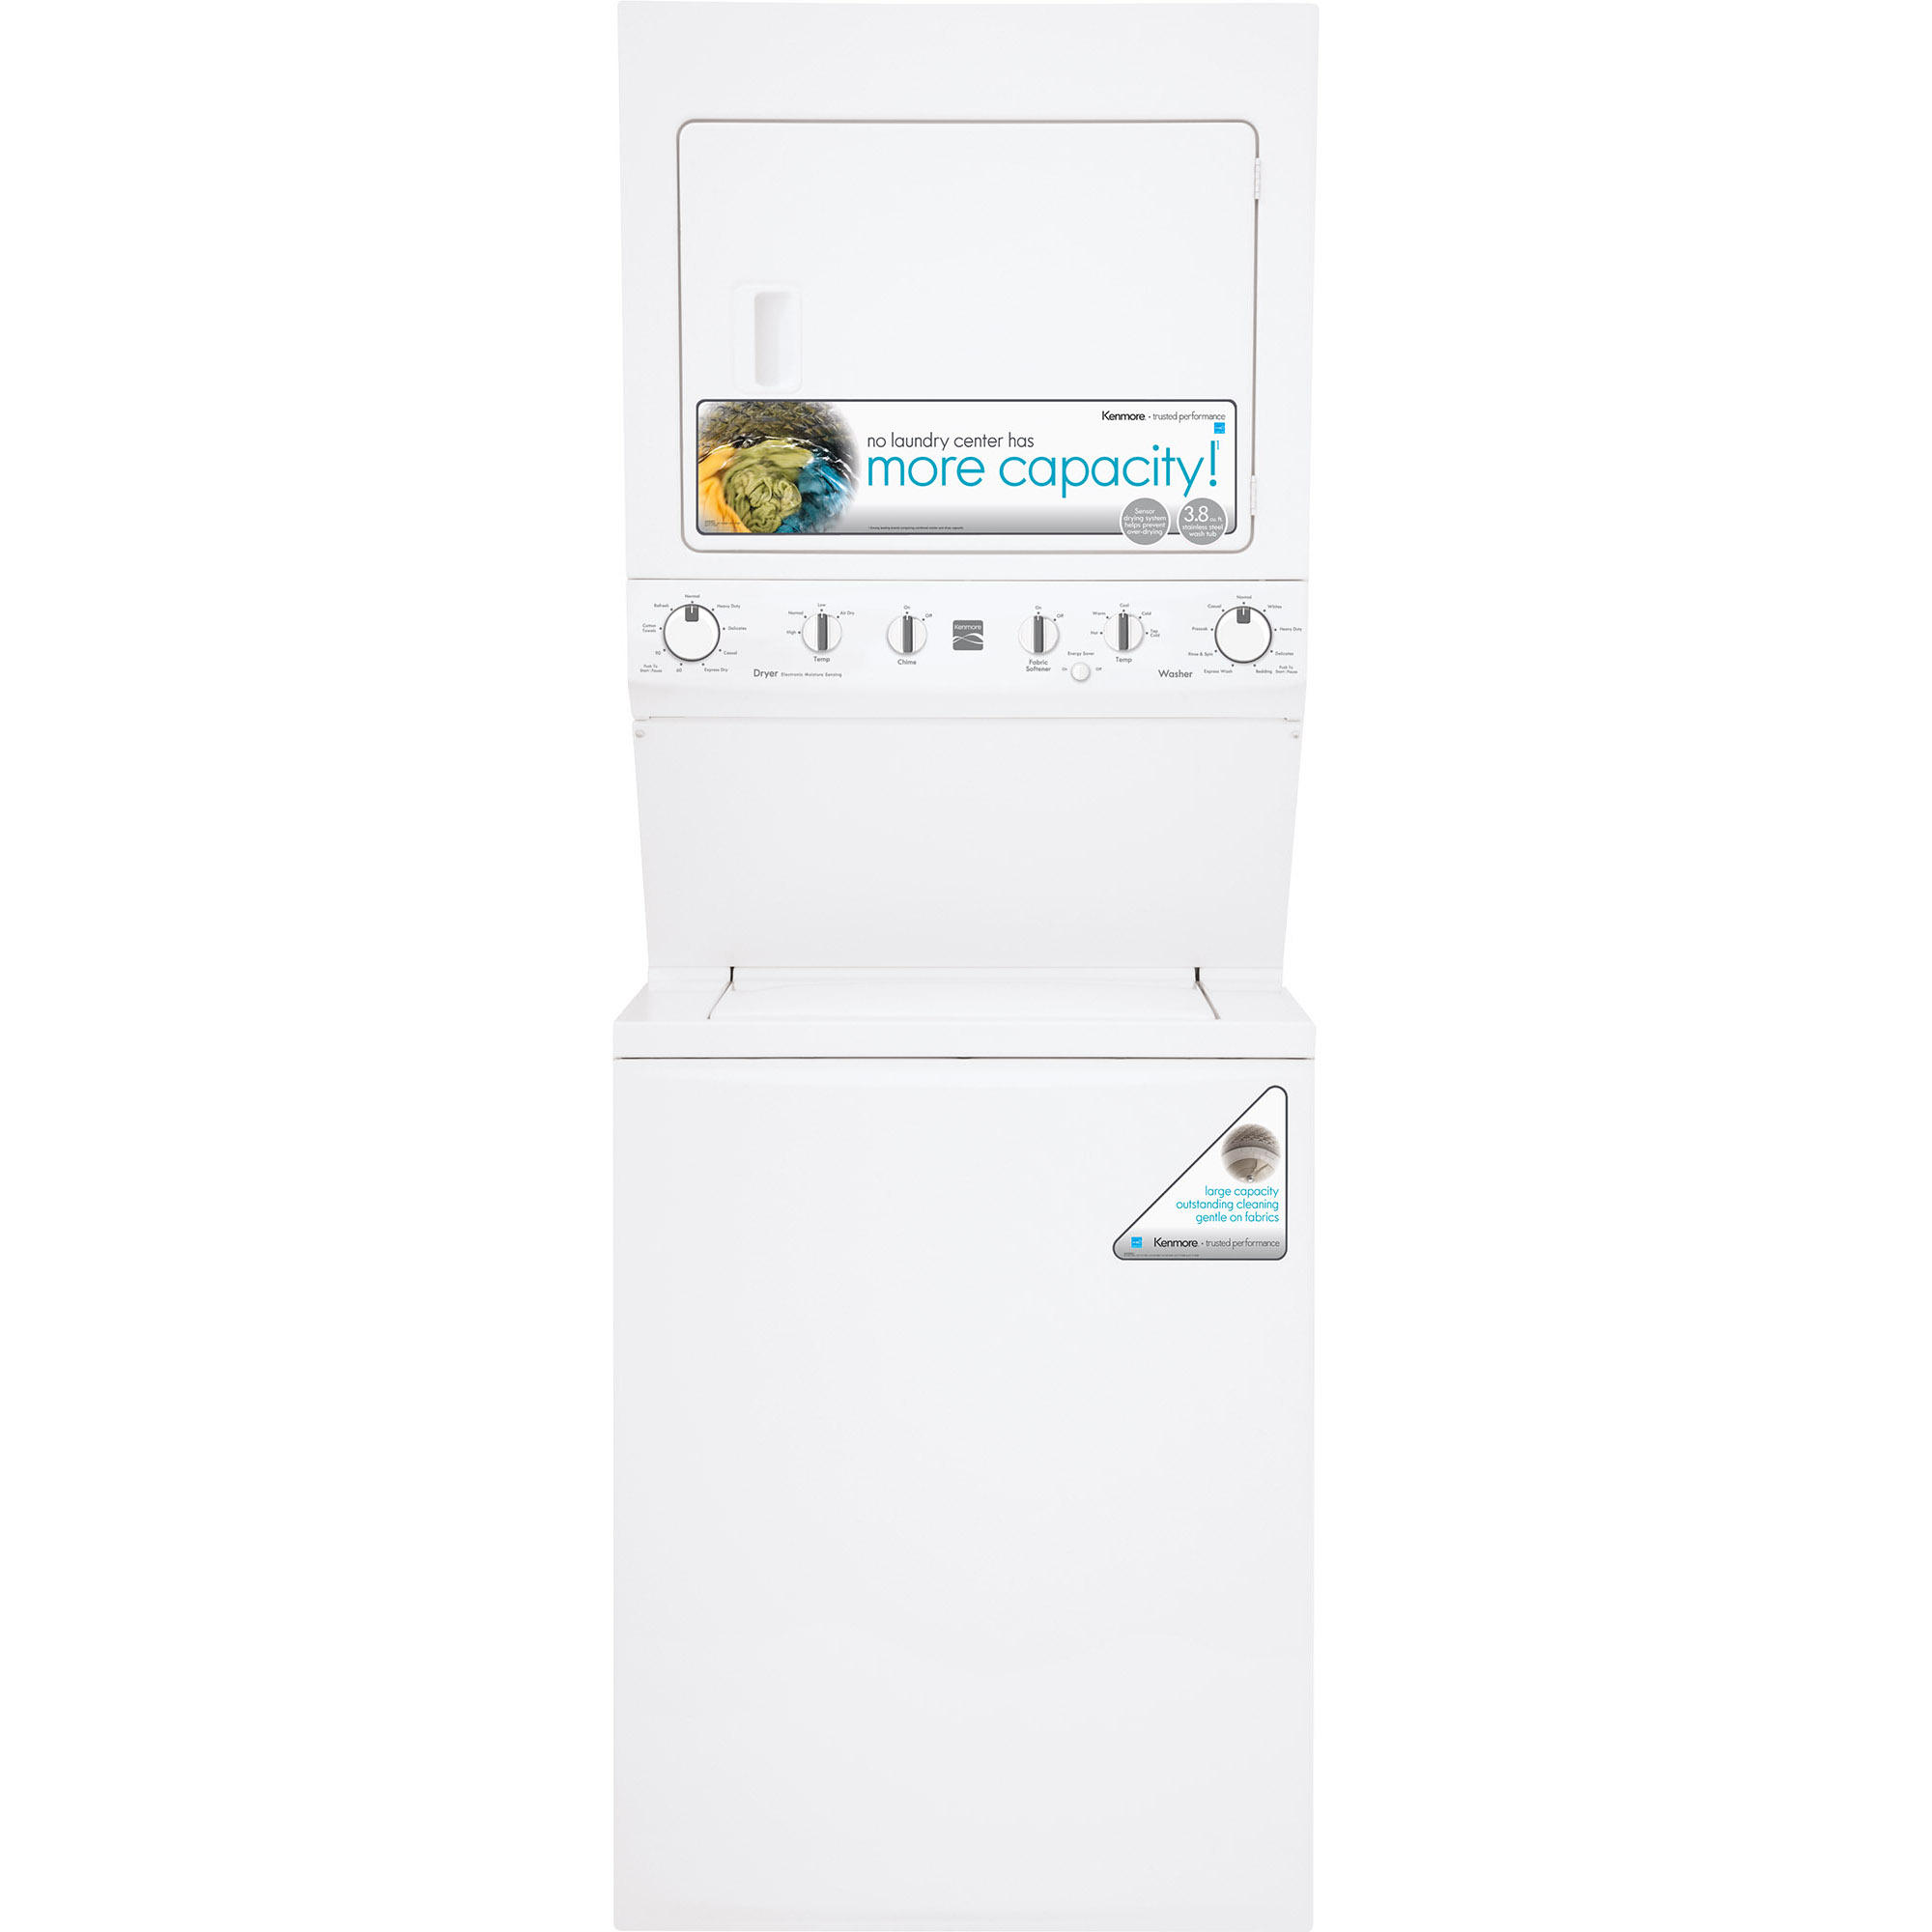 Kenmore High Efficiency 27 Super Capacity 3.8 cu. ft. Electric Laundry Center- White